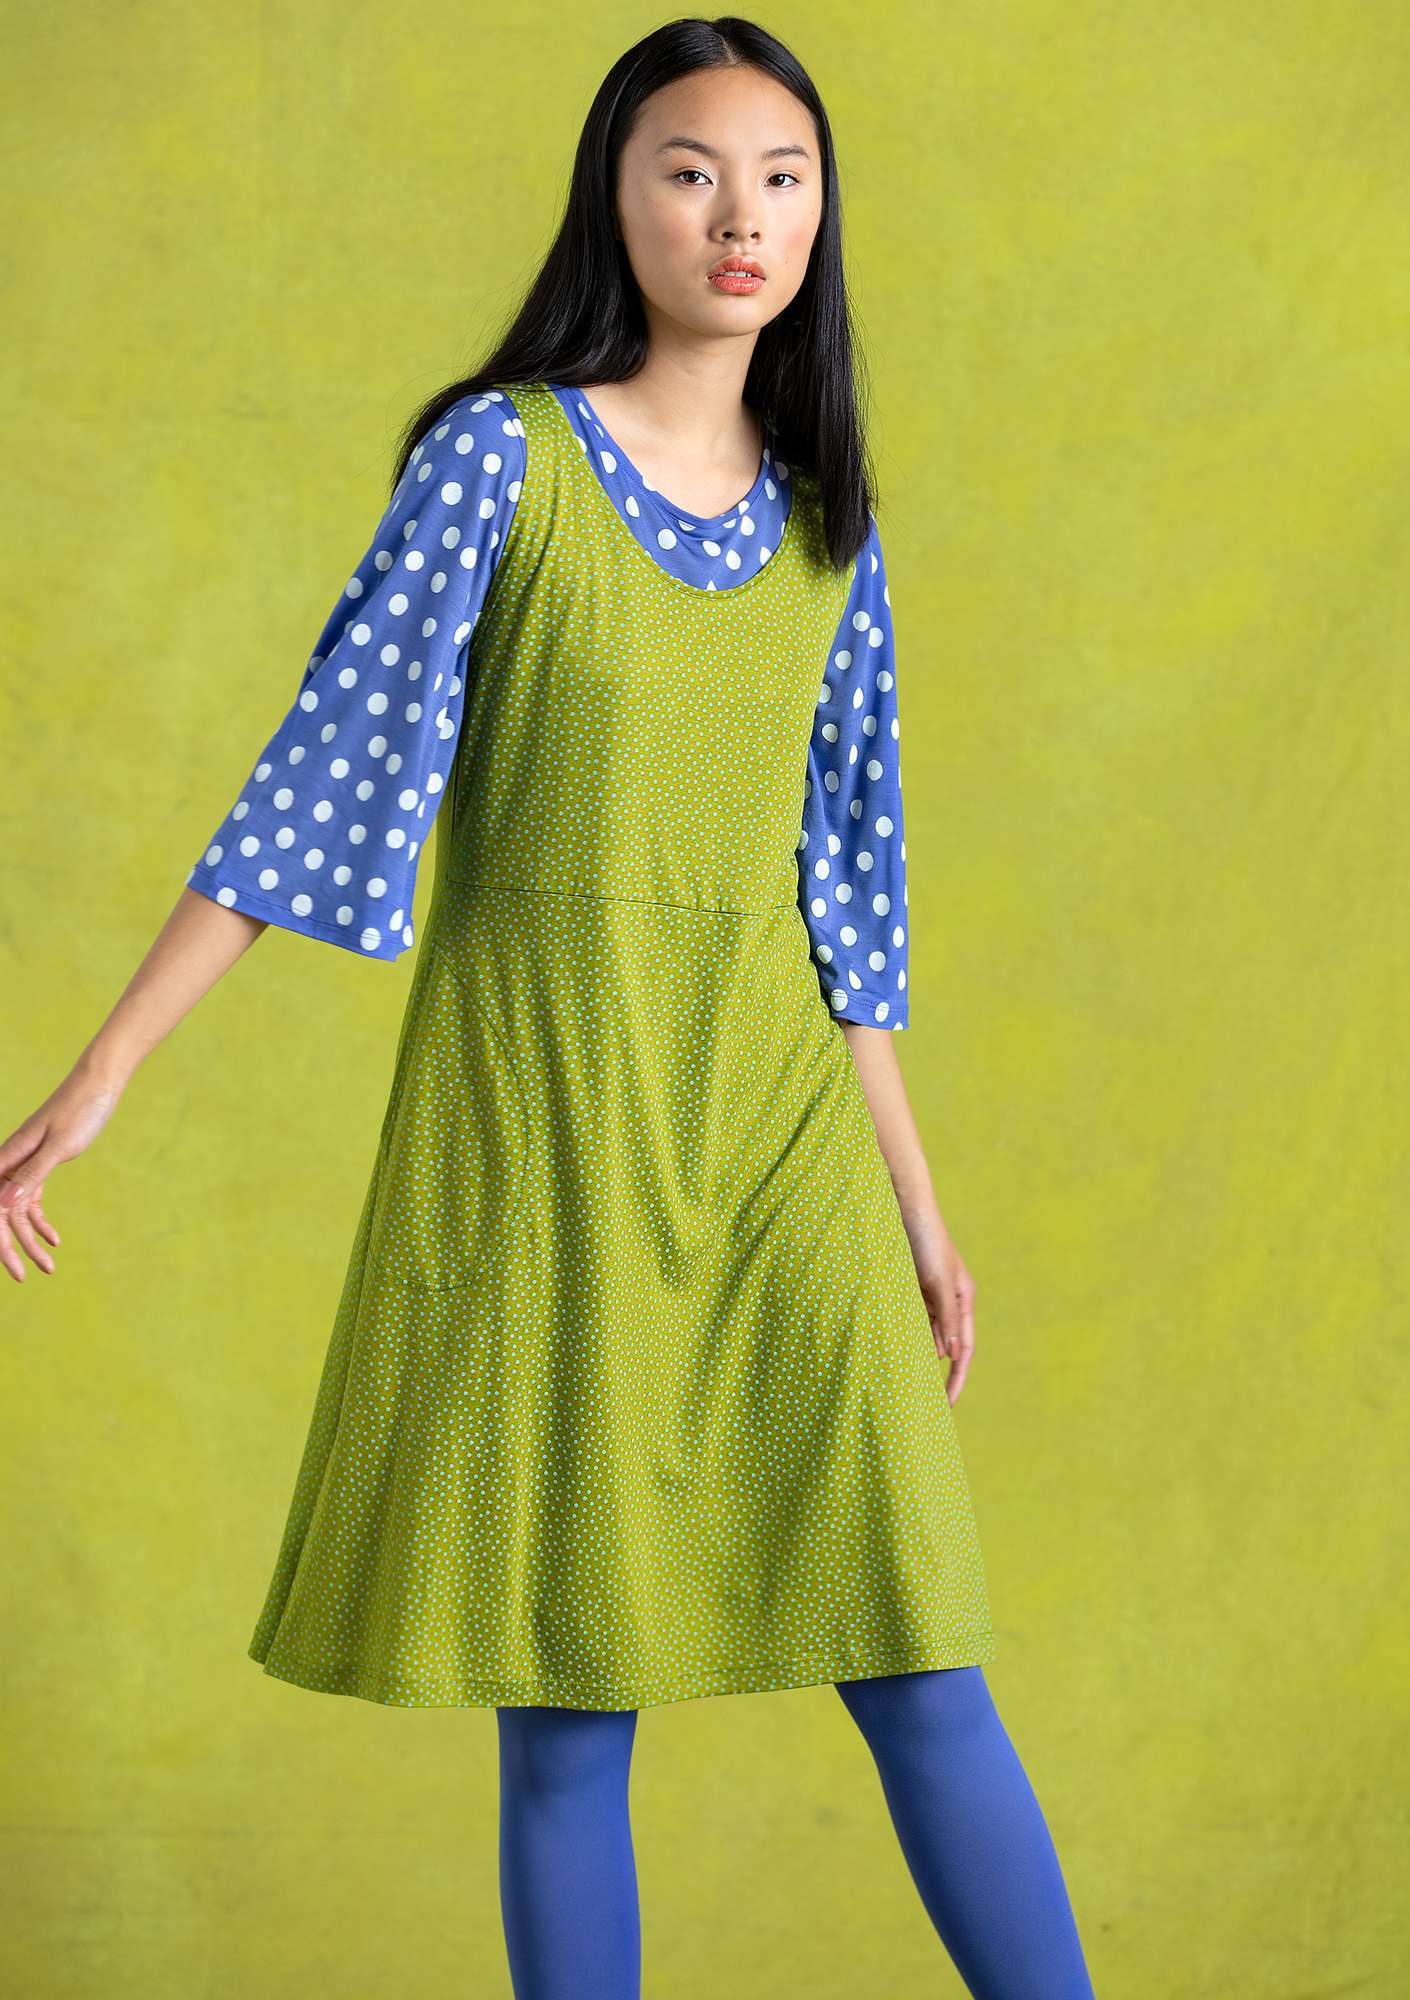 Judit dress asparagus